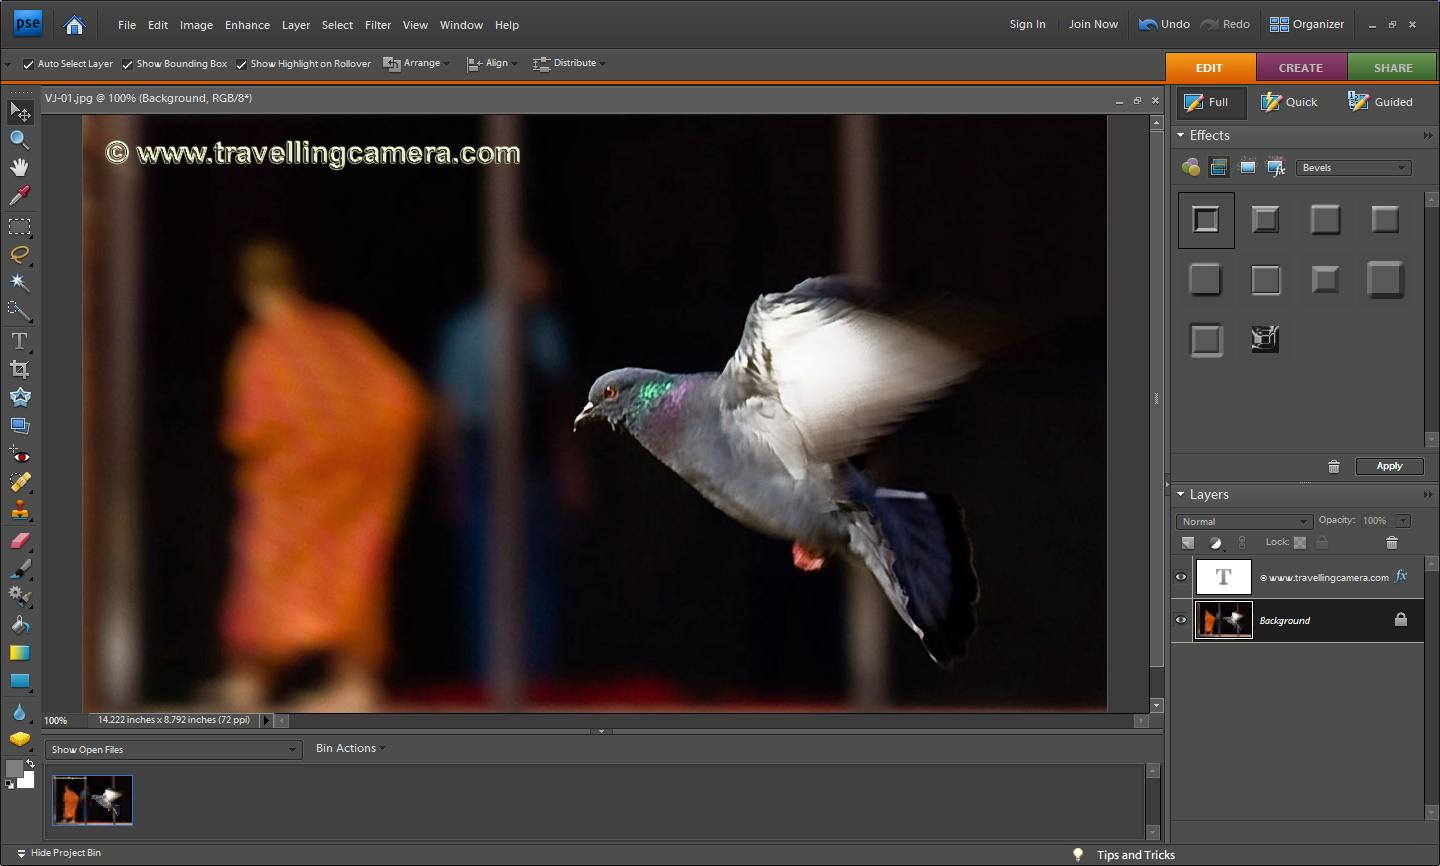 Editing Text in Photoshop Elements 10 - dummies